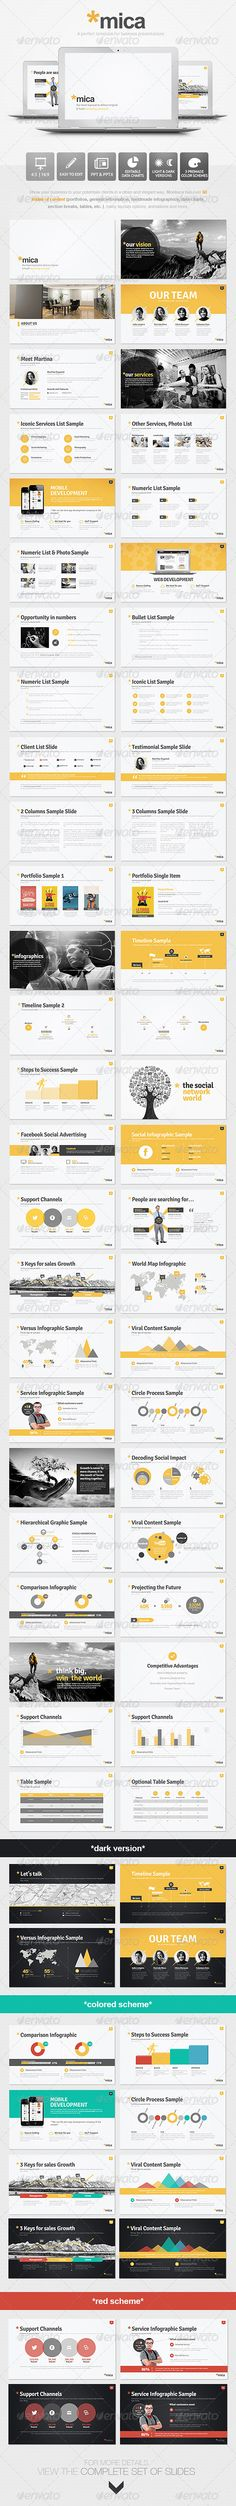 Mica #Powerpoint #Presentation Template - Powerpoint Templates Presentation Templates